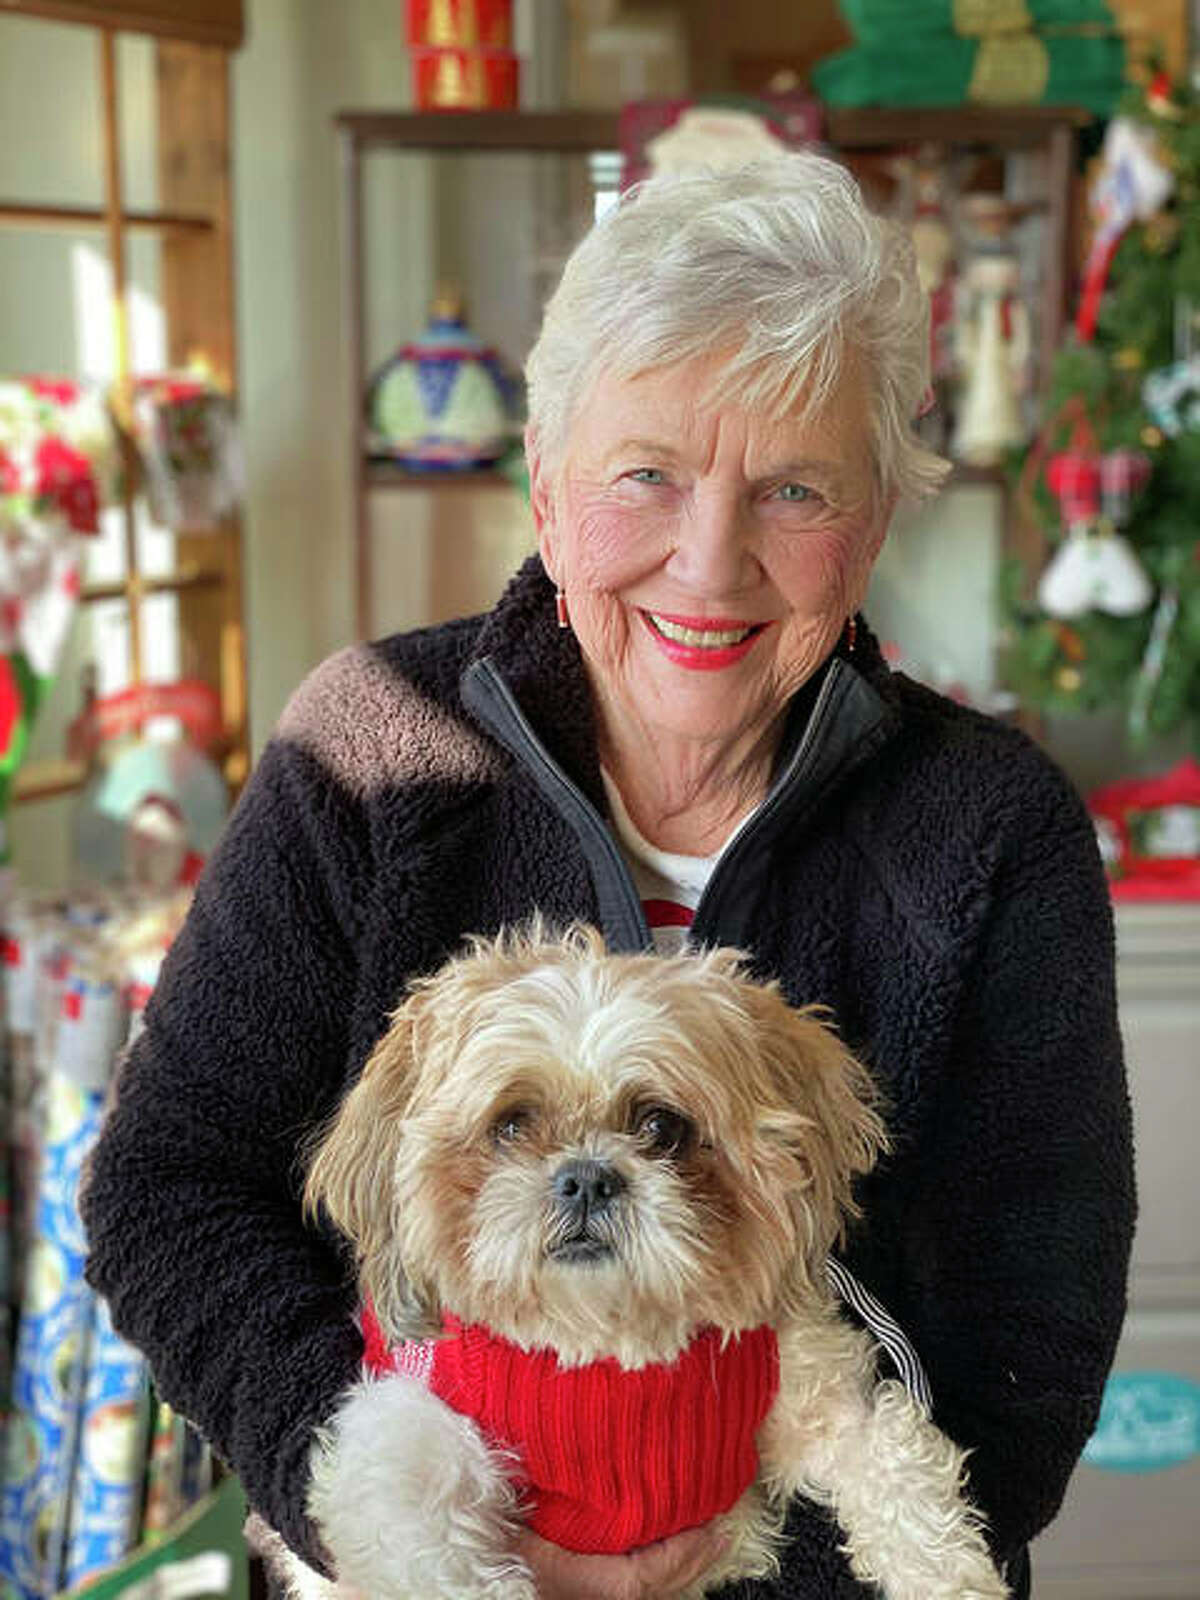 Coldwell Banker Brown Realtors partnering with Partners for Pets to encourage holiday pet adoptions.